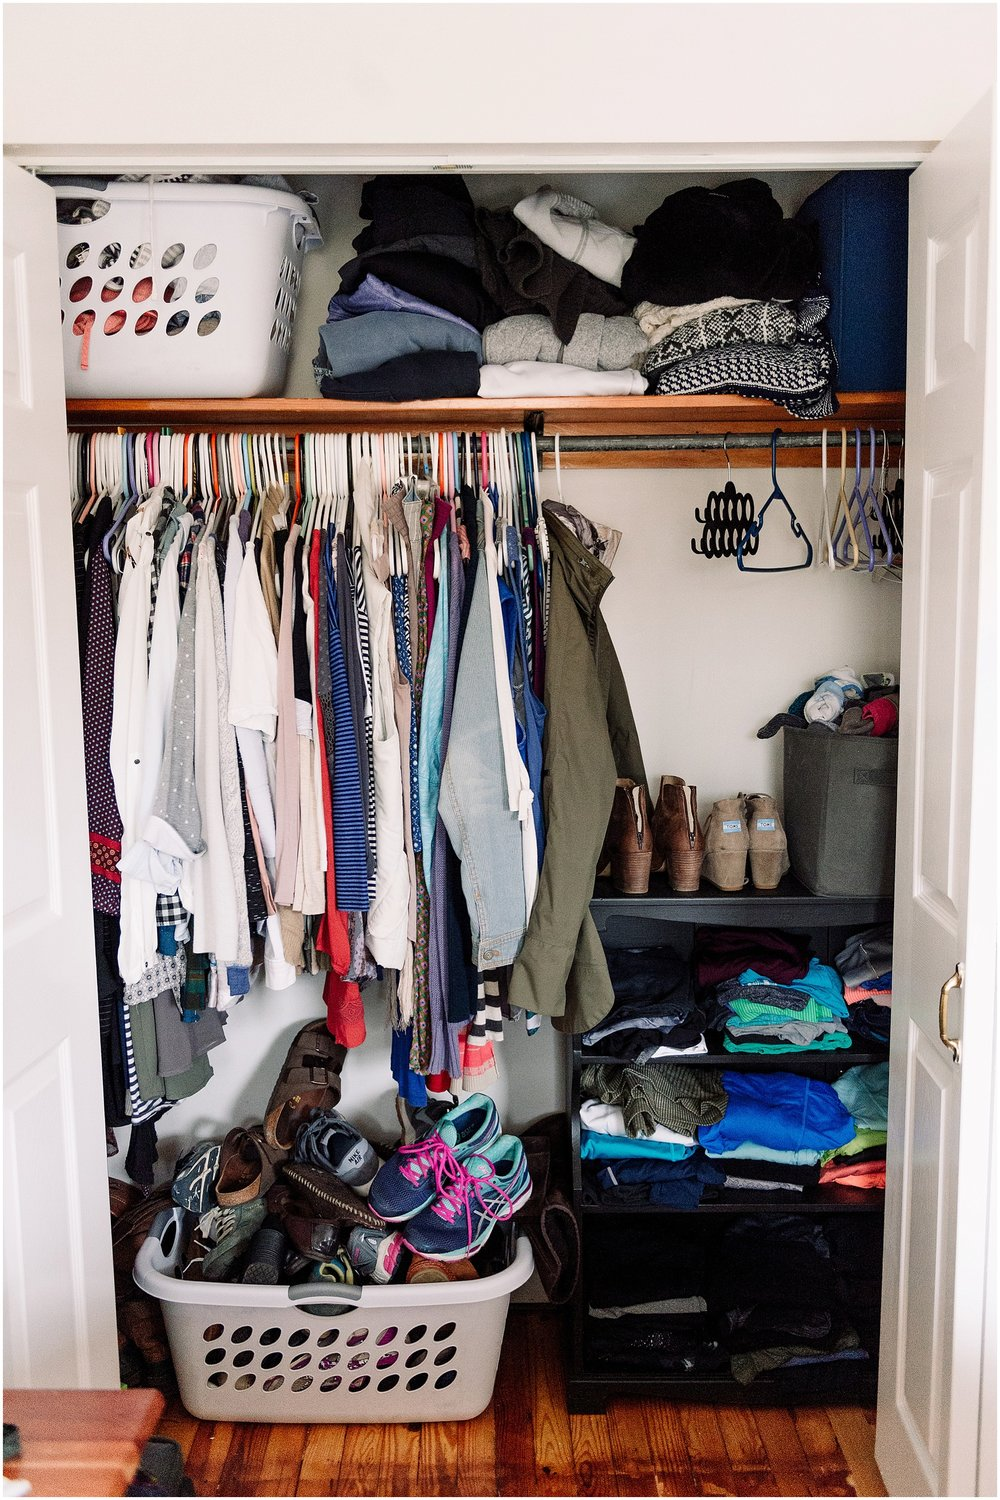 Between Prepping Our House For Move In Day And Packing Up All Our Stuff, I  Neglected To Really Go Through My Closet And Only Bring Things I Still Want.